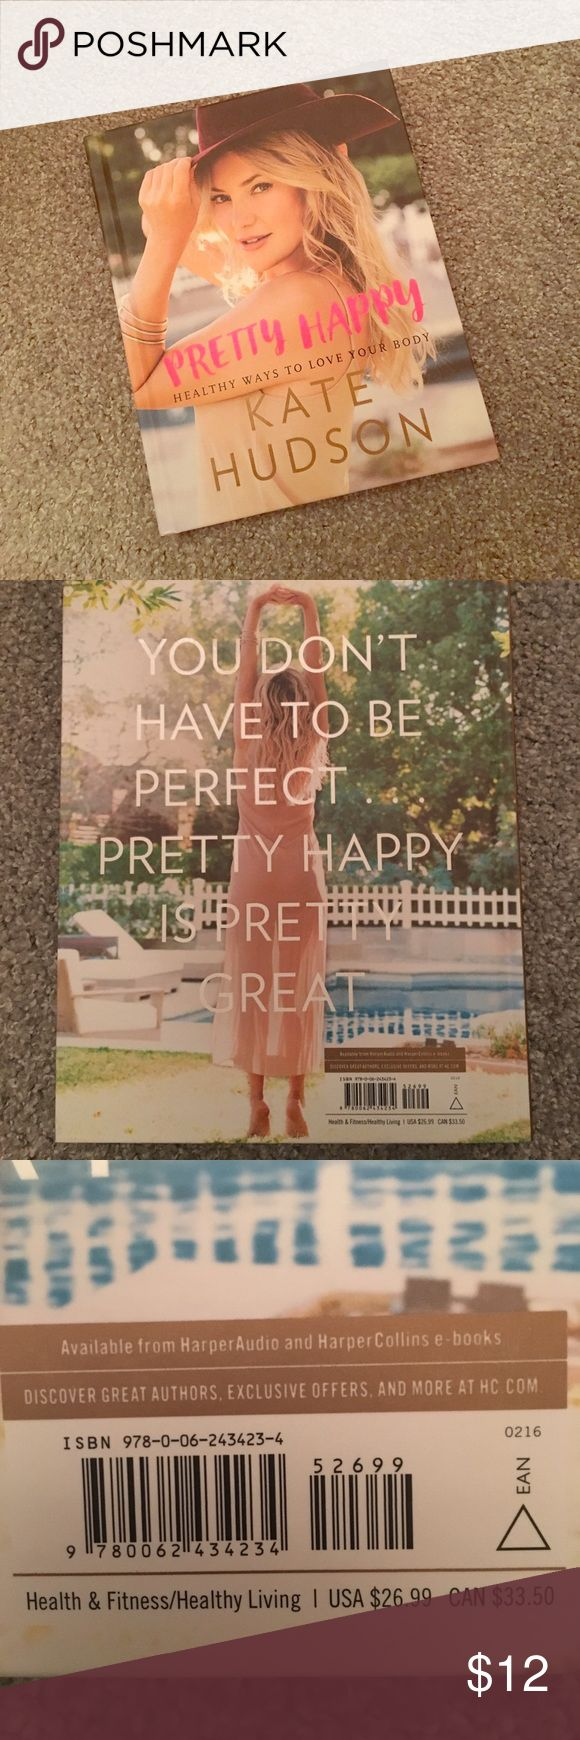 """Kate Hudson Book """"Pretty Happy"""" Kate Hudson """"Pretty Happy"""" book. In excellent condition. Has been read through but still in great/new shape. Other"""